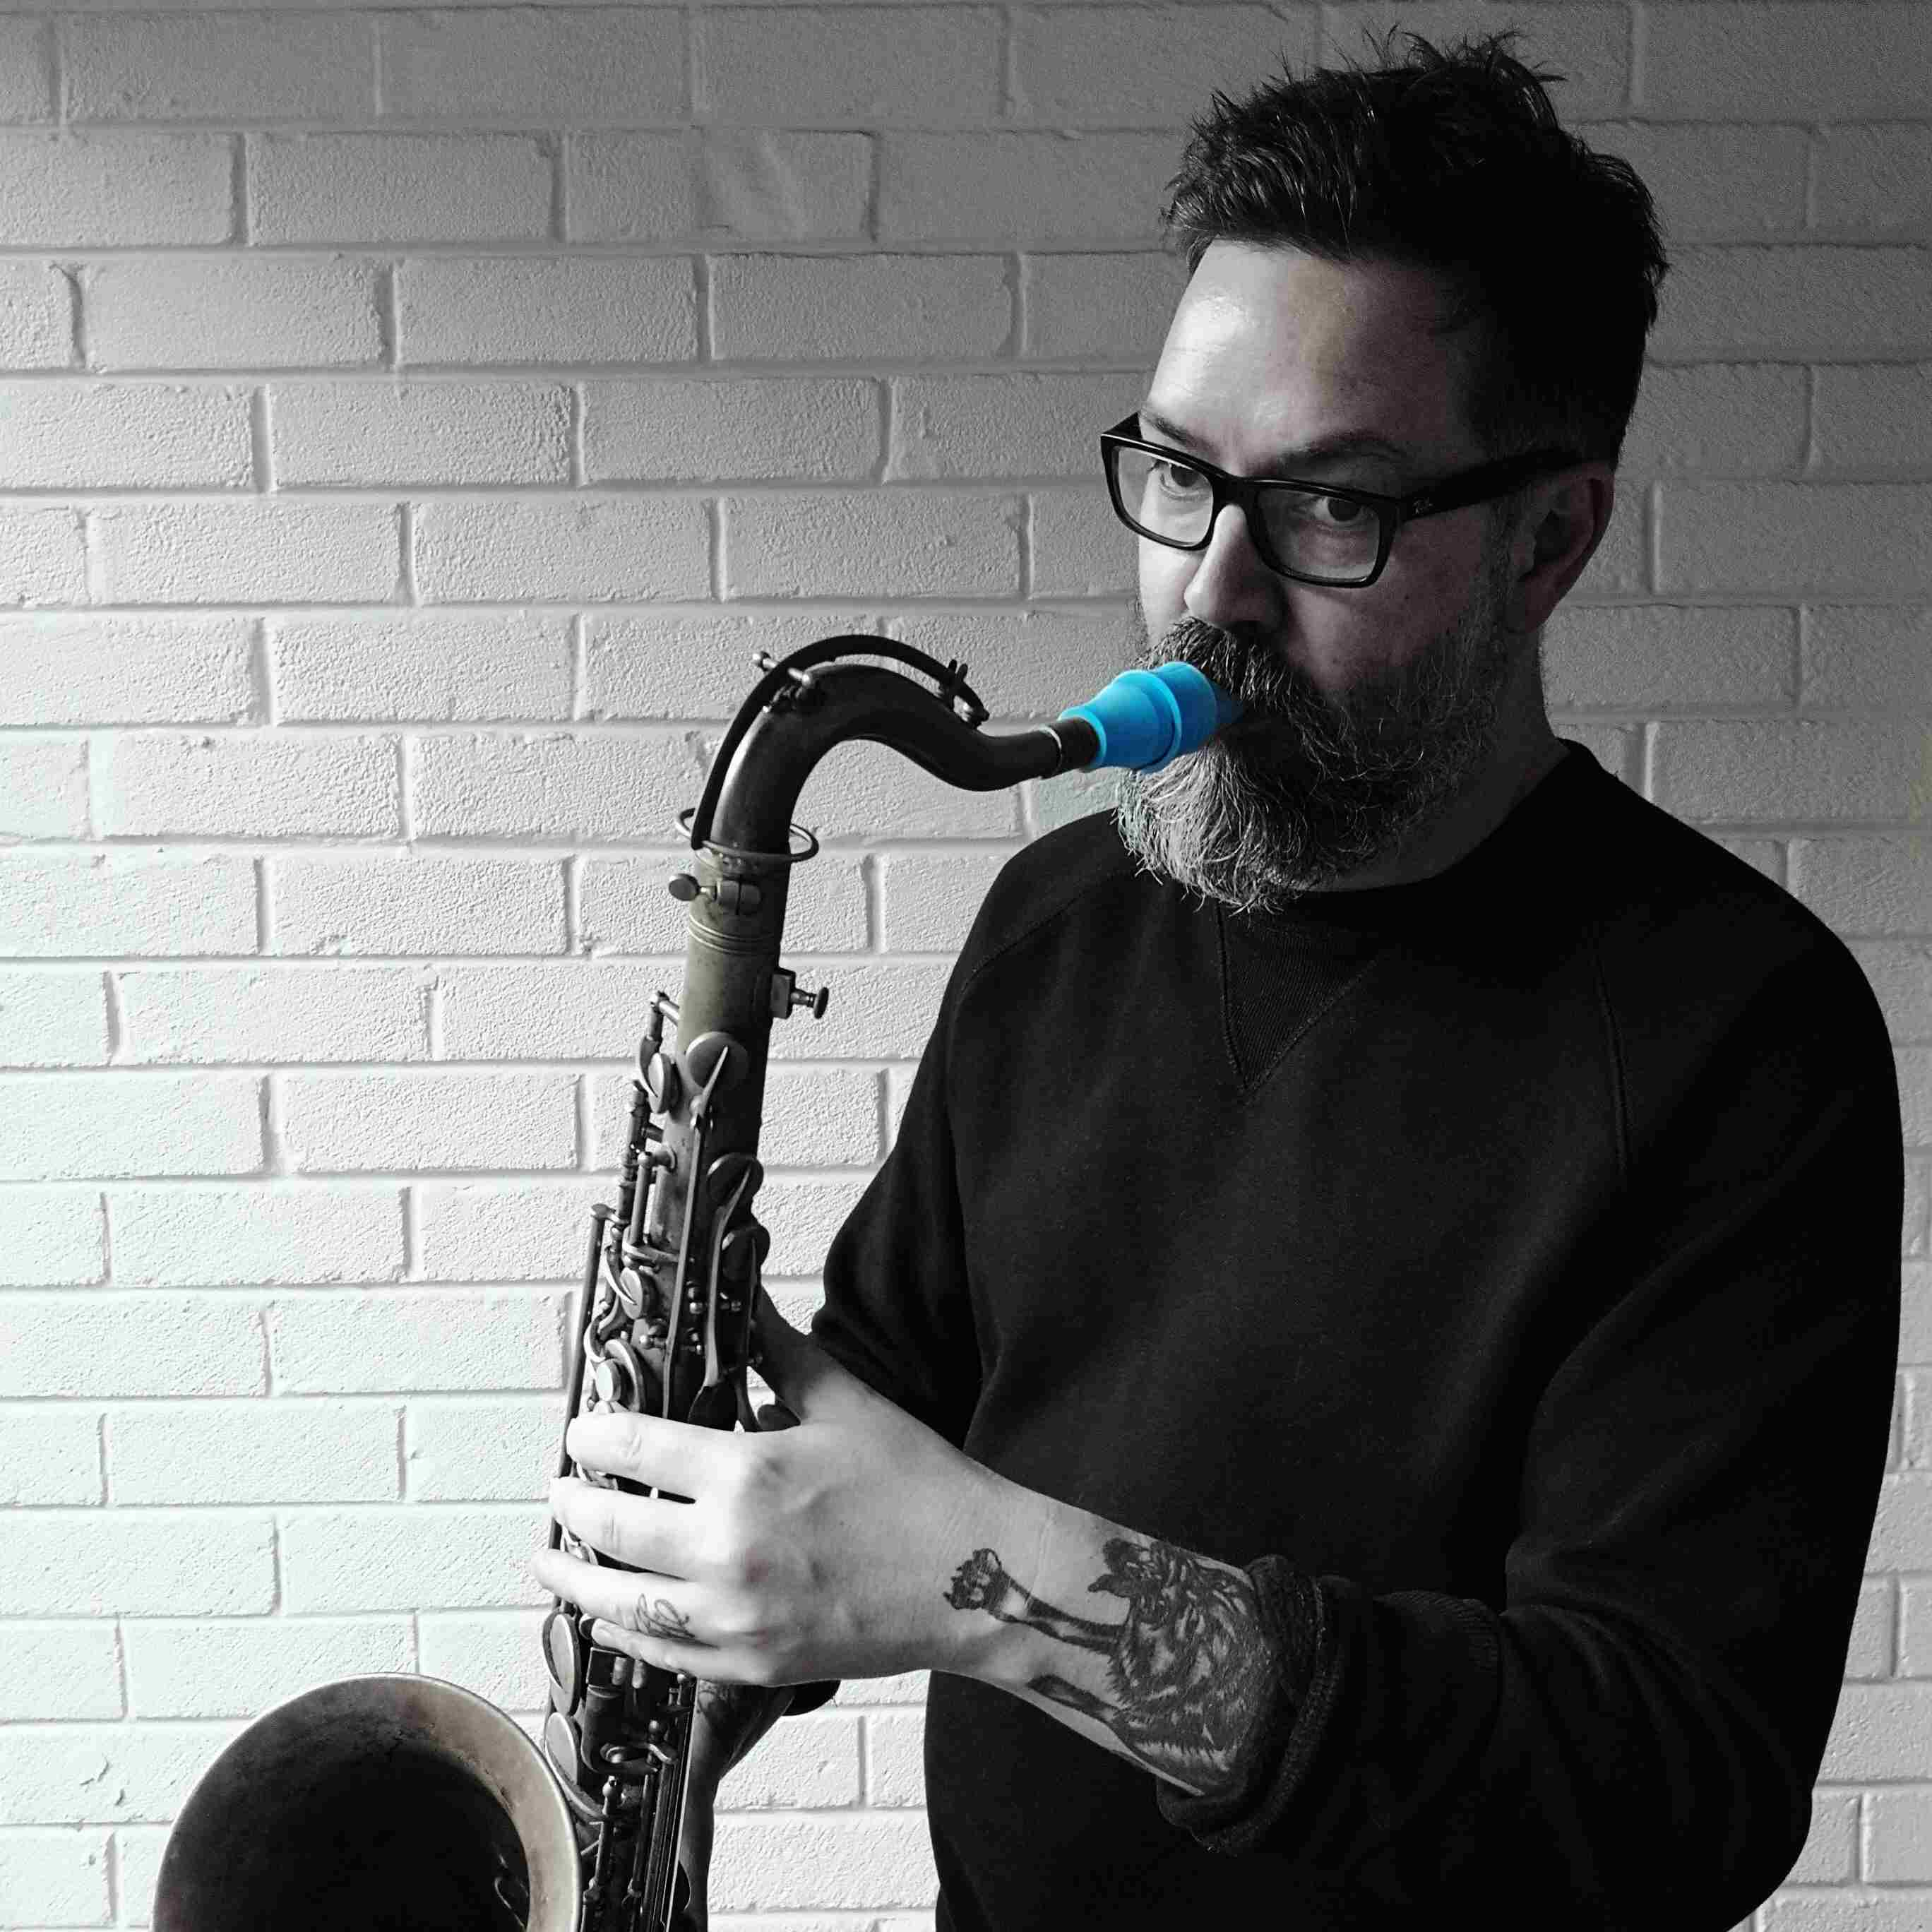 Bob Whittaker plays a Syos tenor saxophone mouthpiece